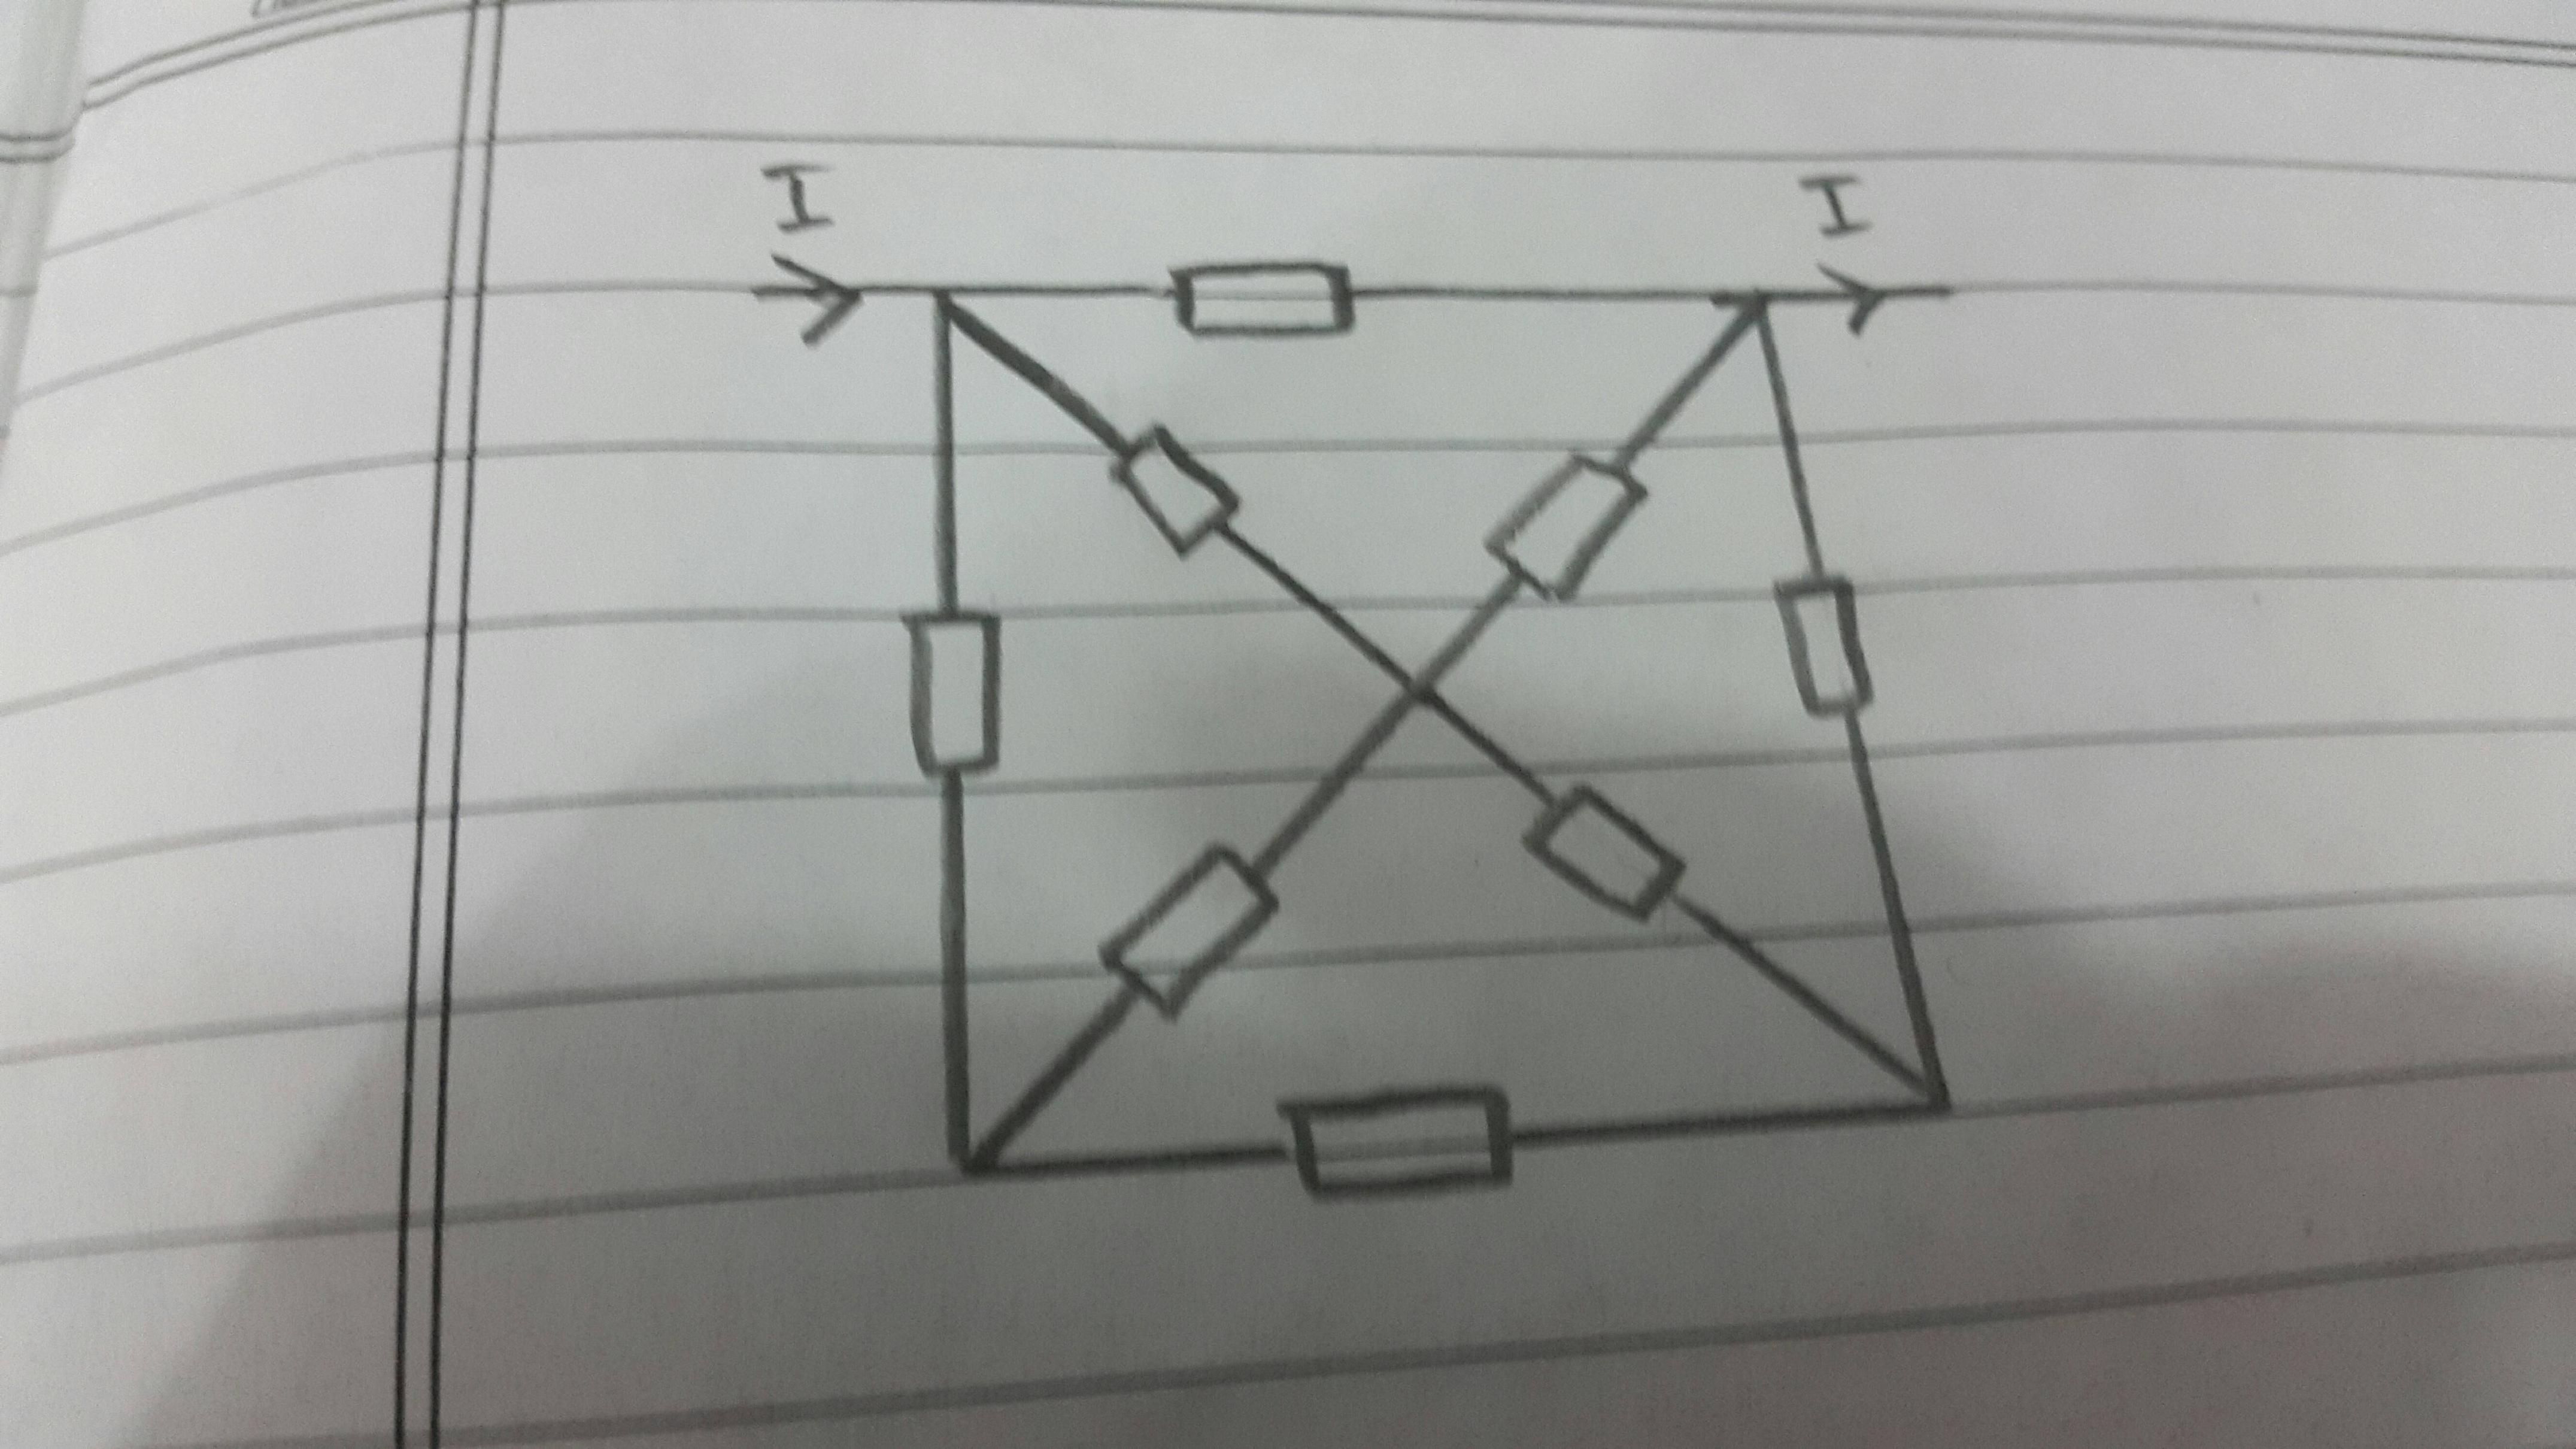 How Does Someone Calculate The Total Resistance Of Such A Circuit